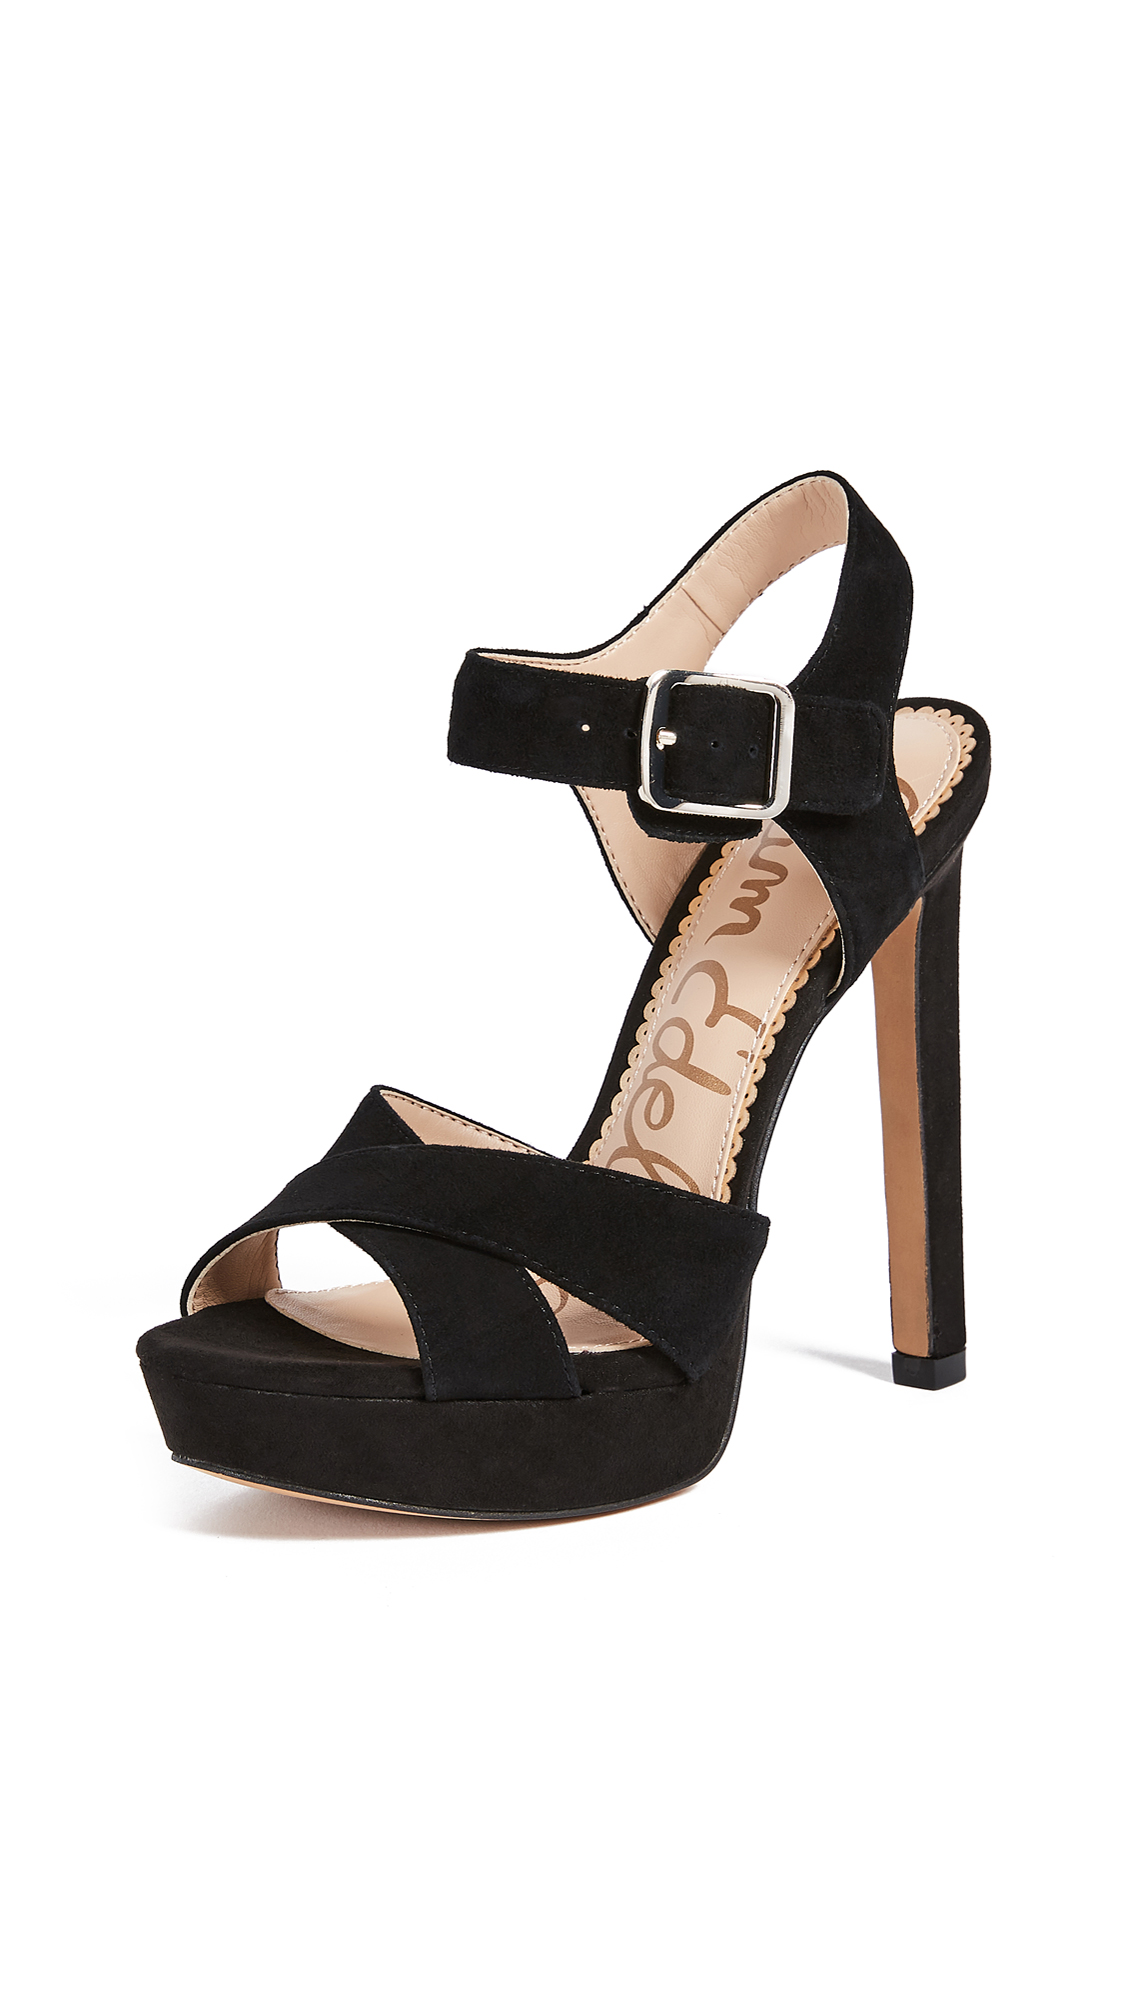 Sam Edelman Willa Sandals - Black